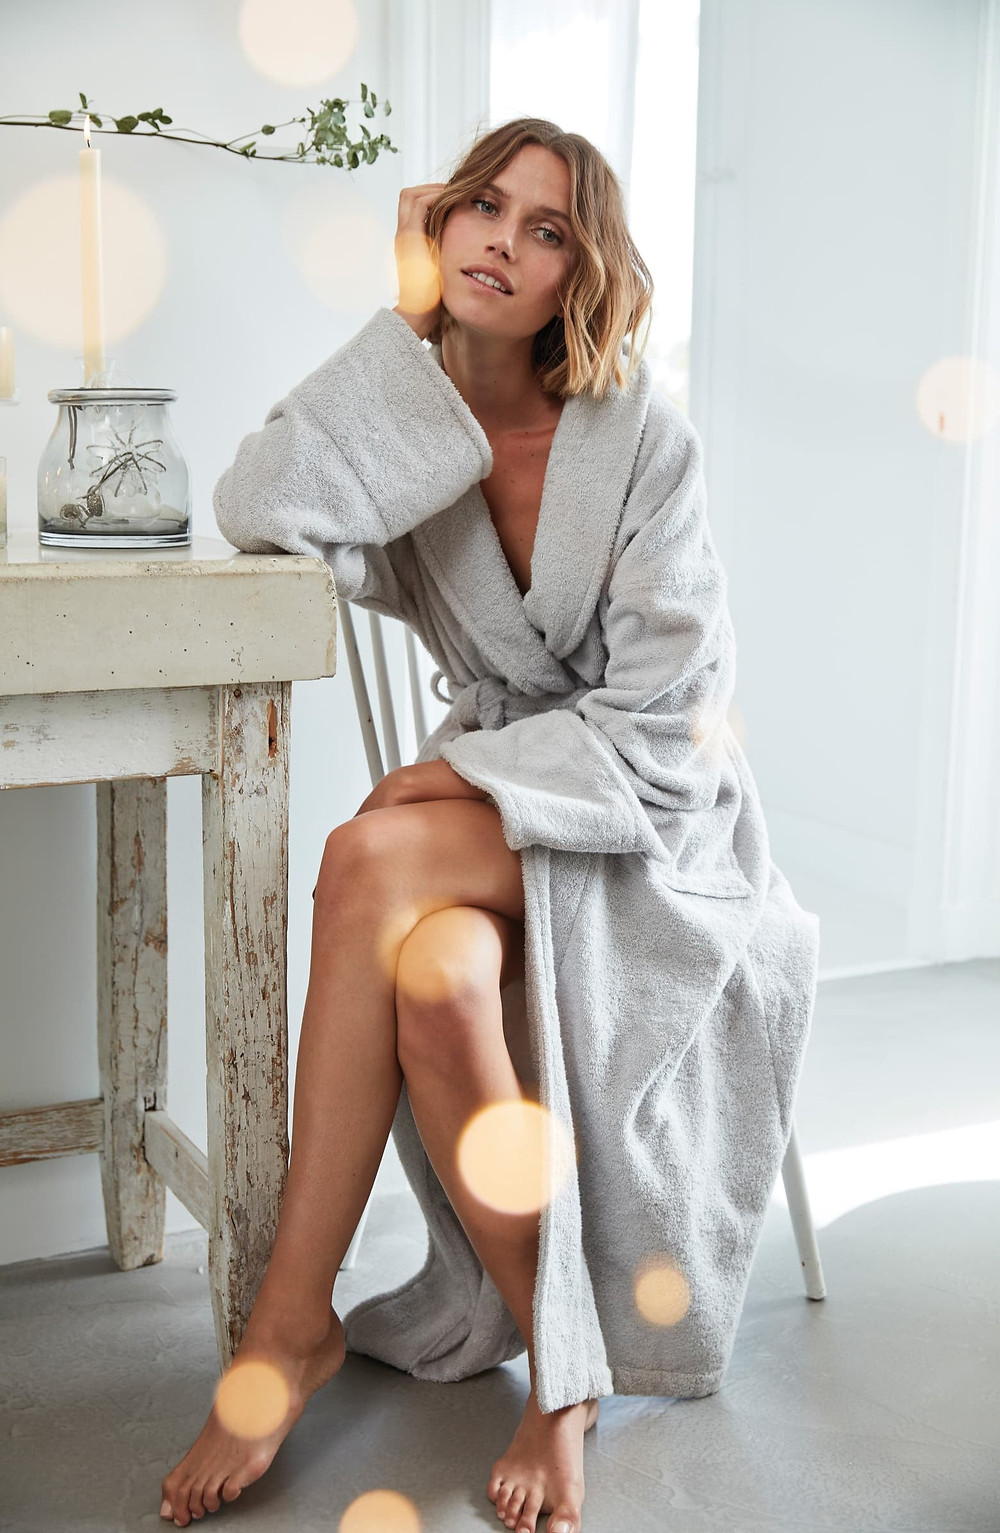 Most comfortable robe, luxurious robe, women's robes, robes, cashmere robes, woman in blue robe, blond woman in blue robe, mothers day gift, woman sitting.